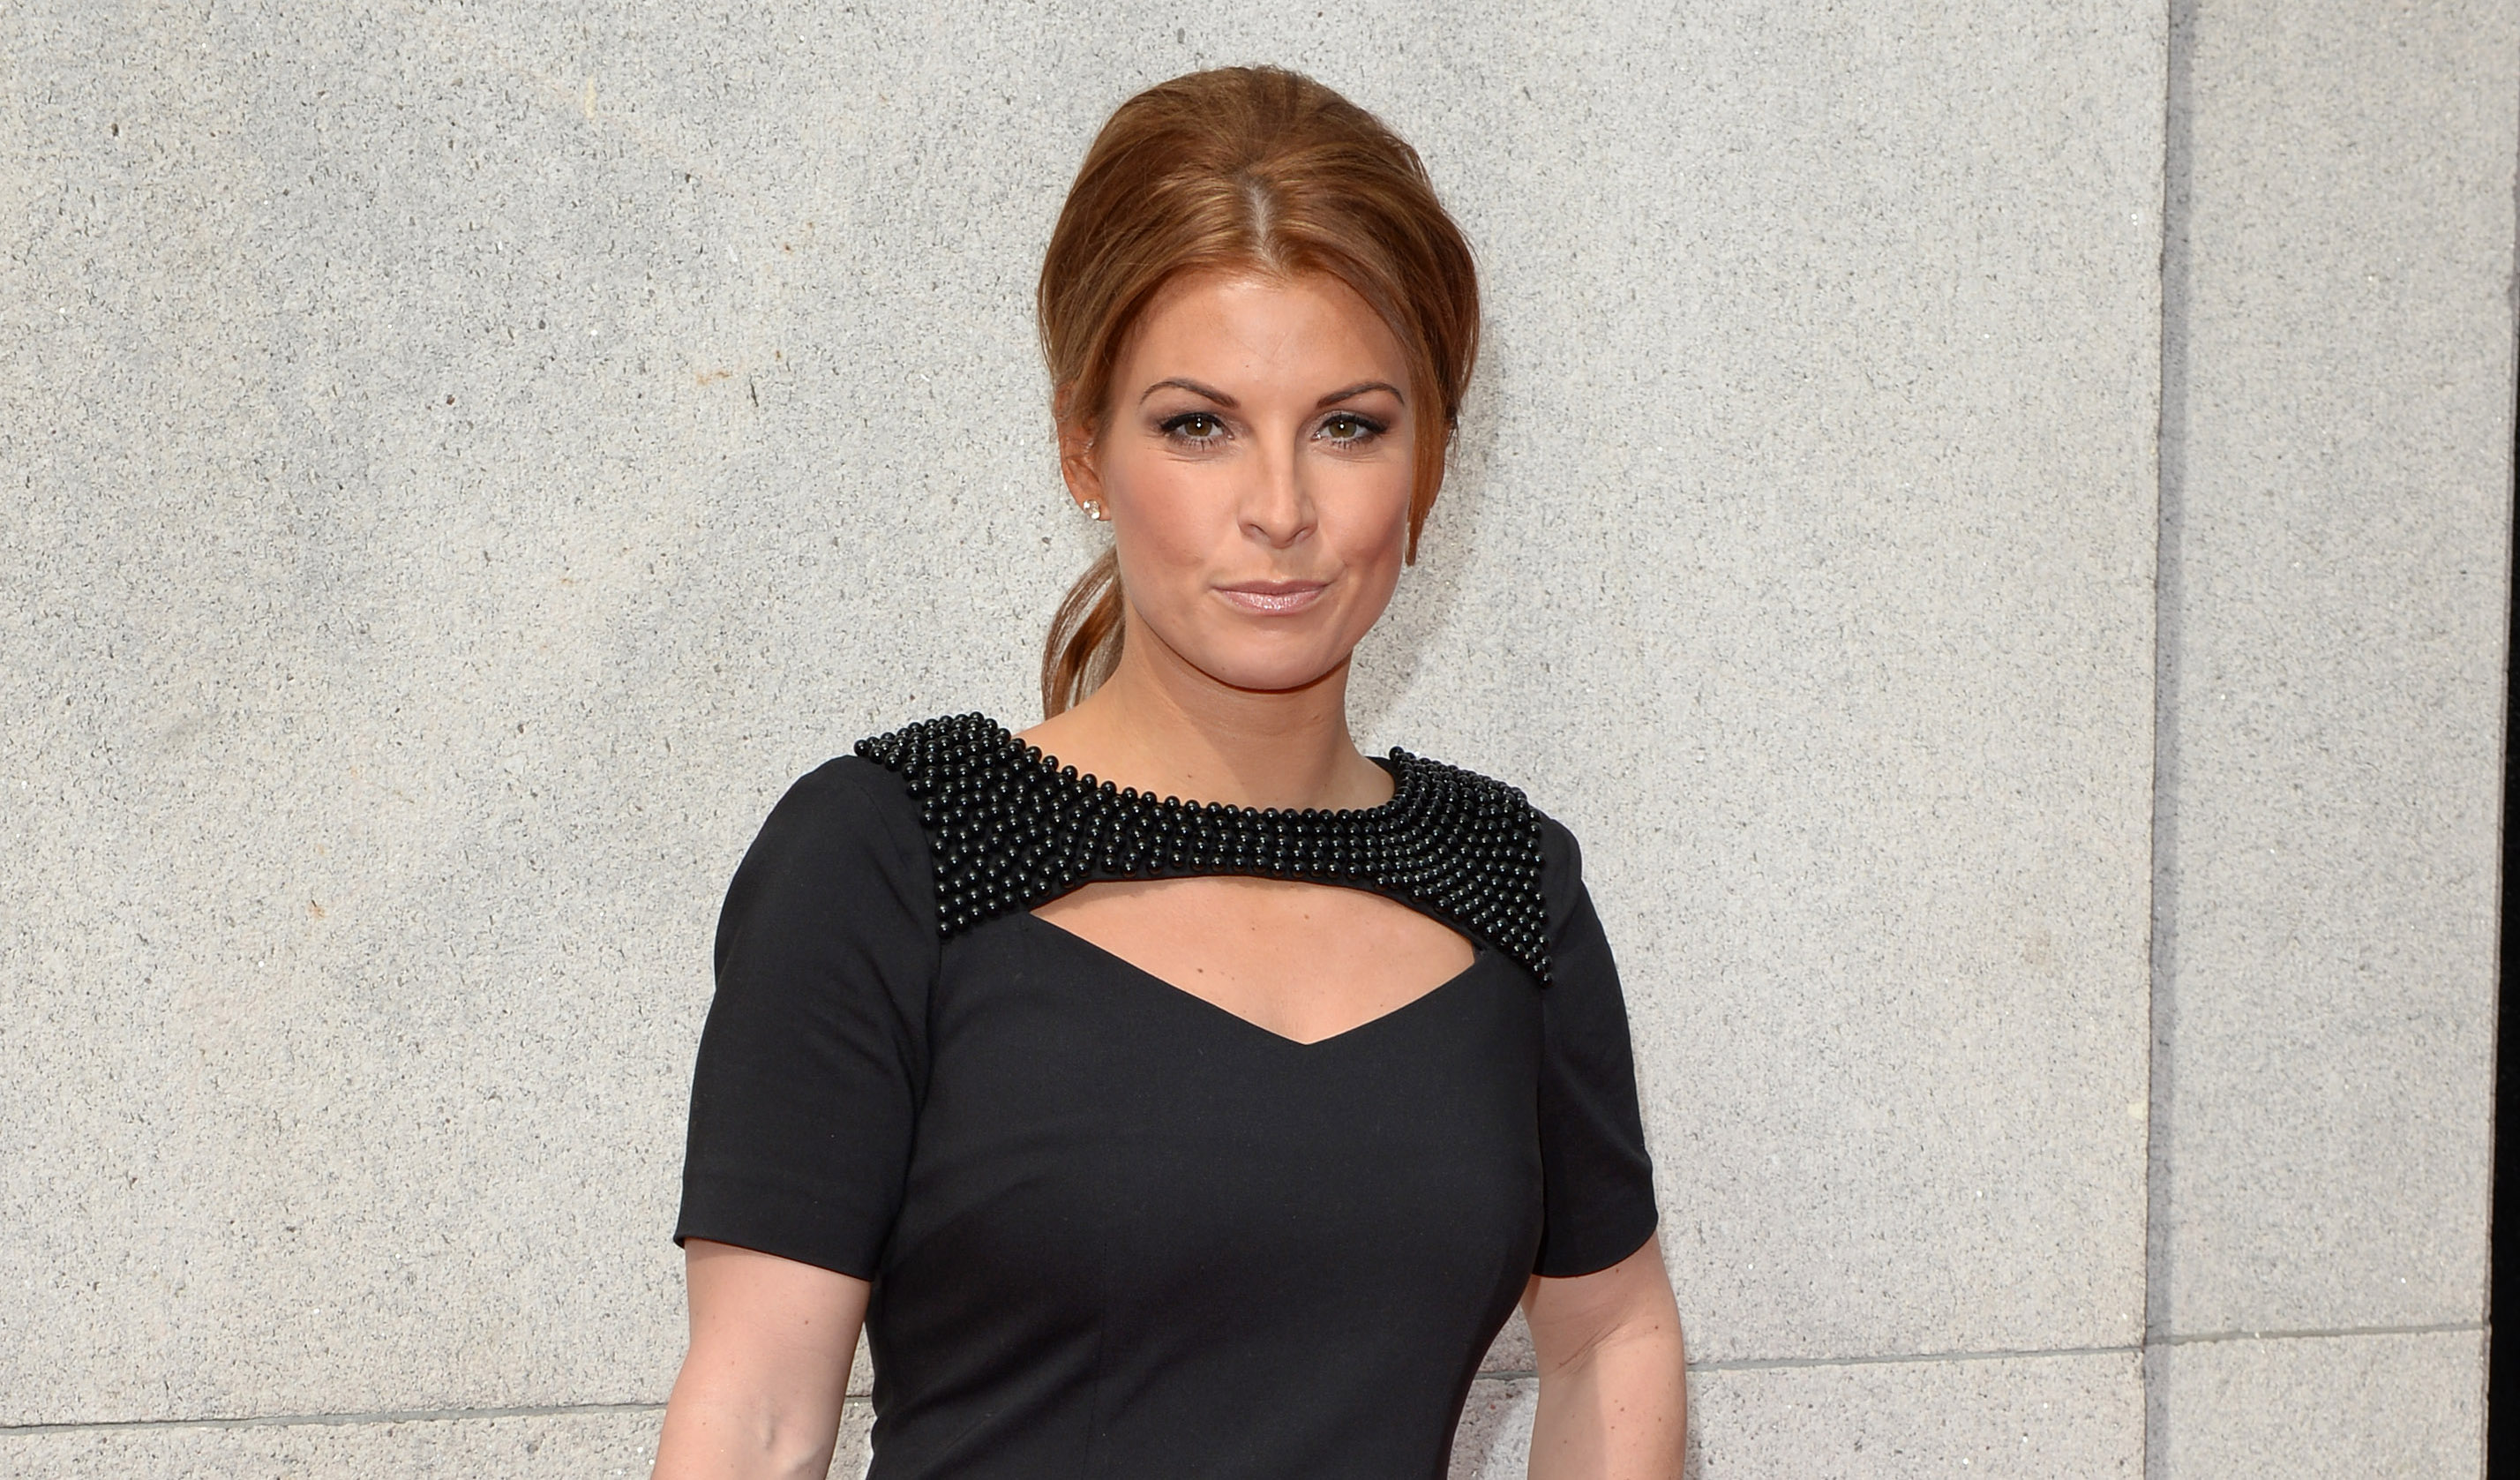 Coleen Rooney - Strictly Come Dancing rumours